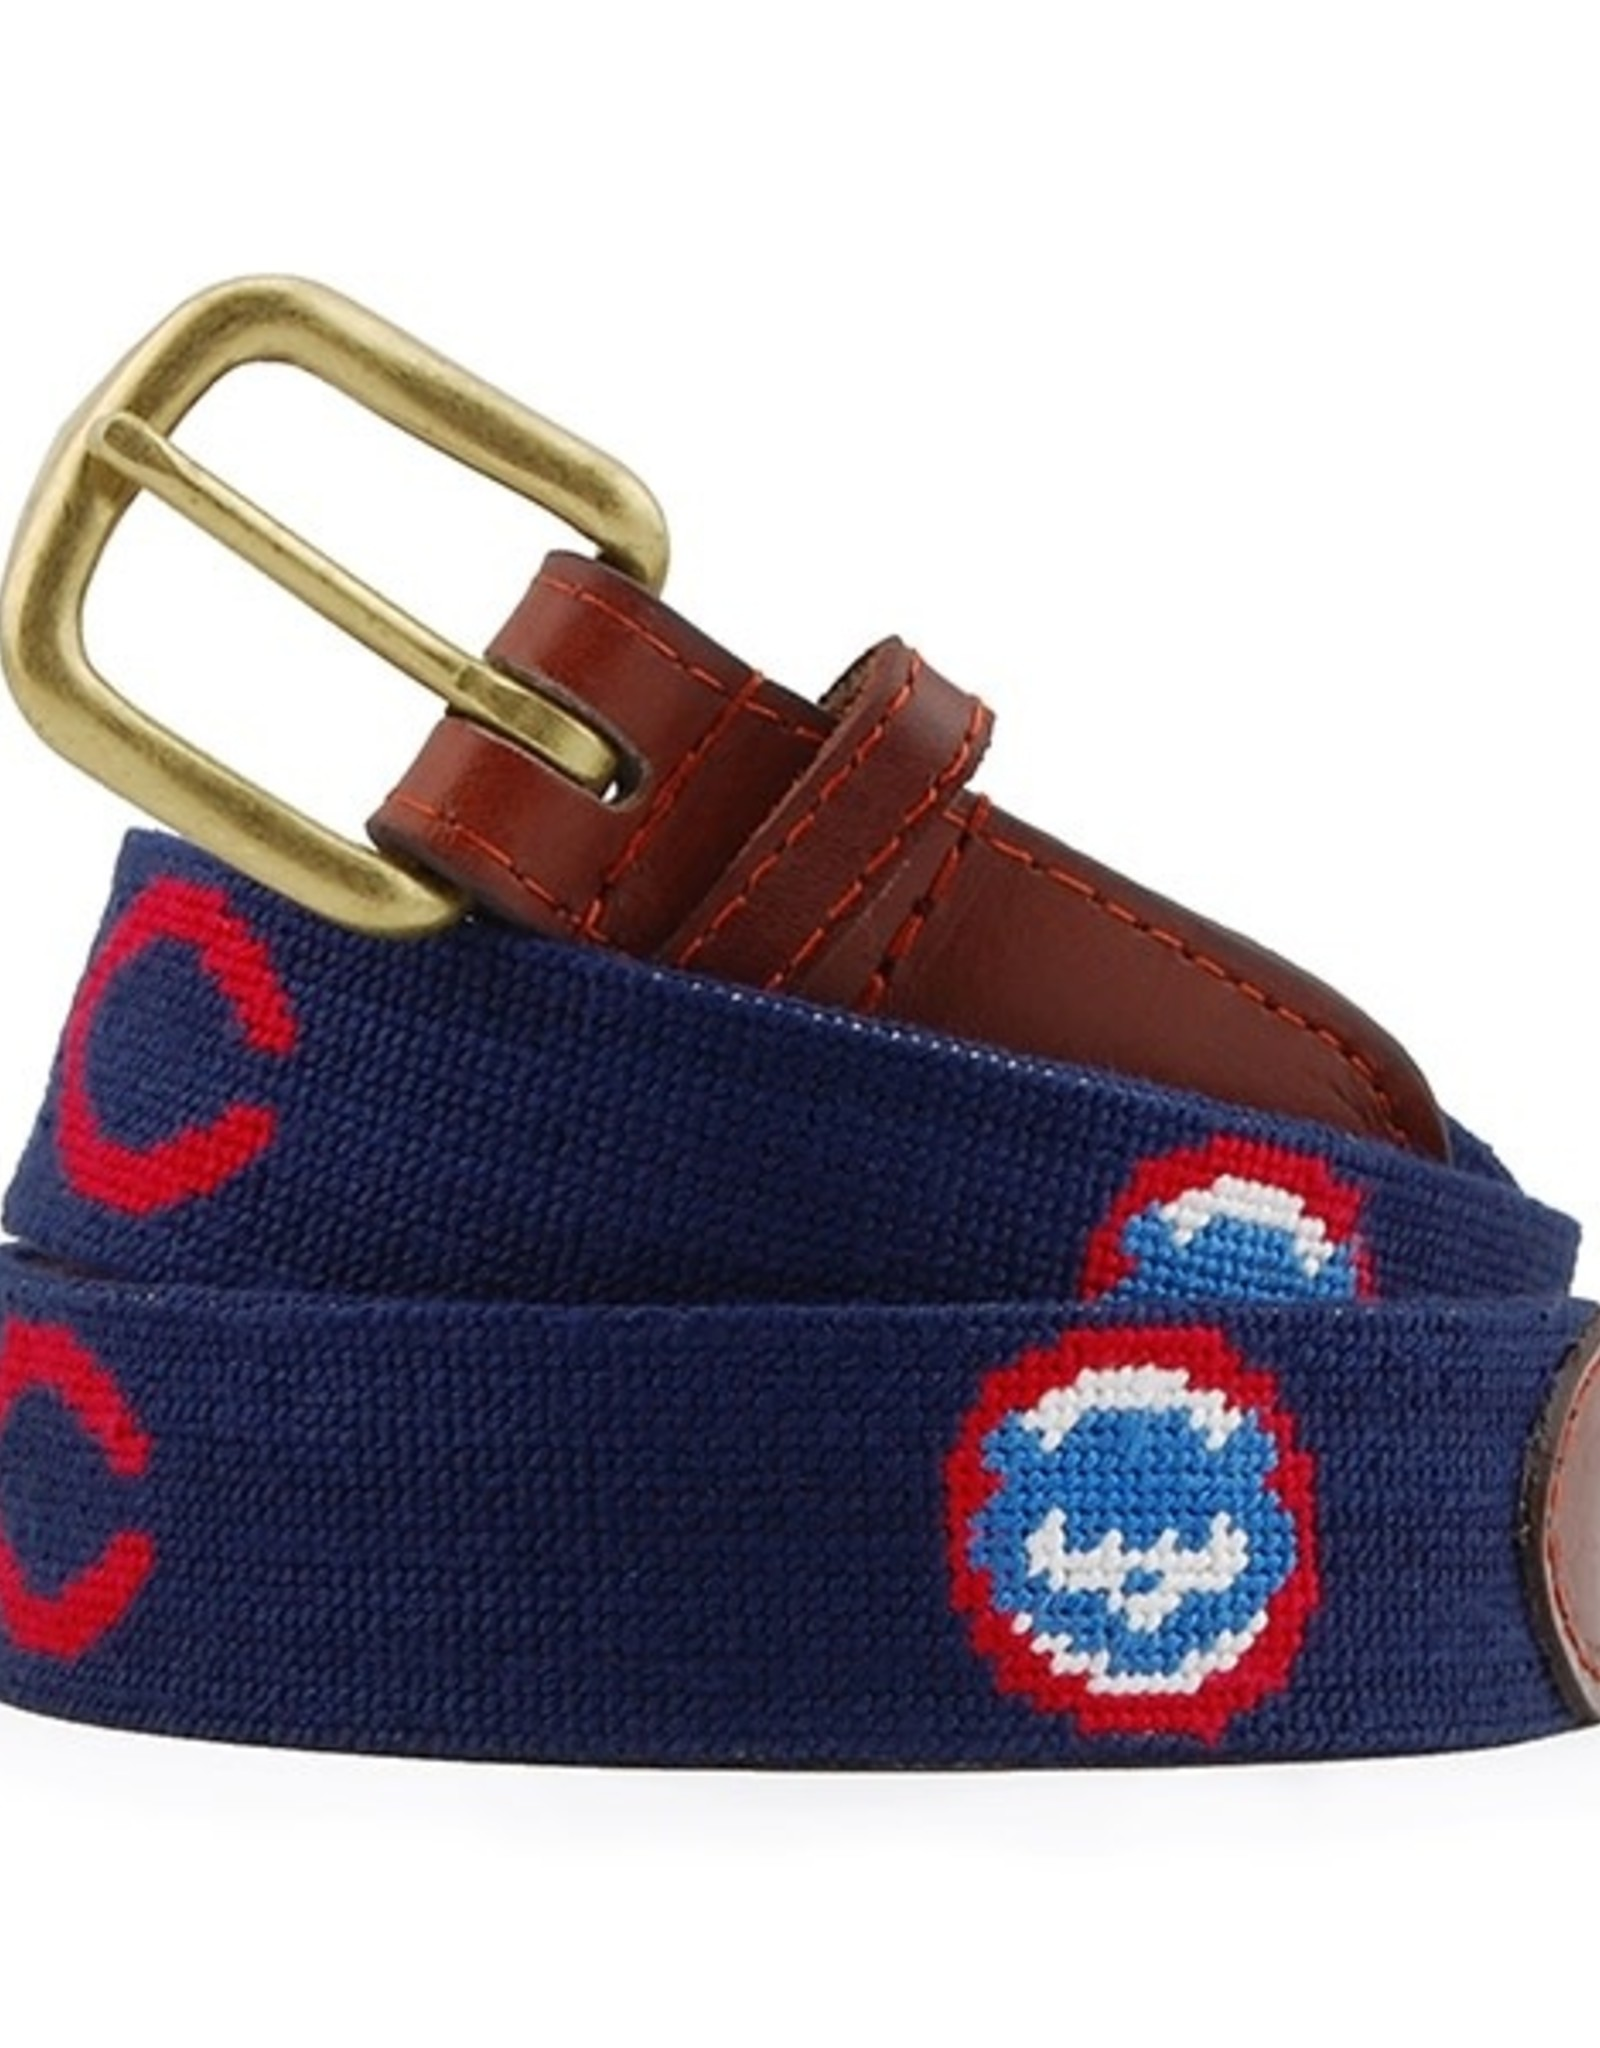 Smather's & Branson Belt Chicago Cubs Cooperstown